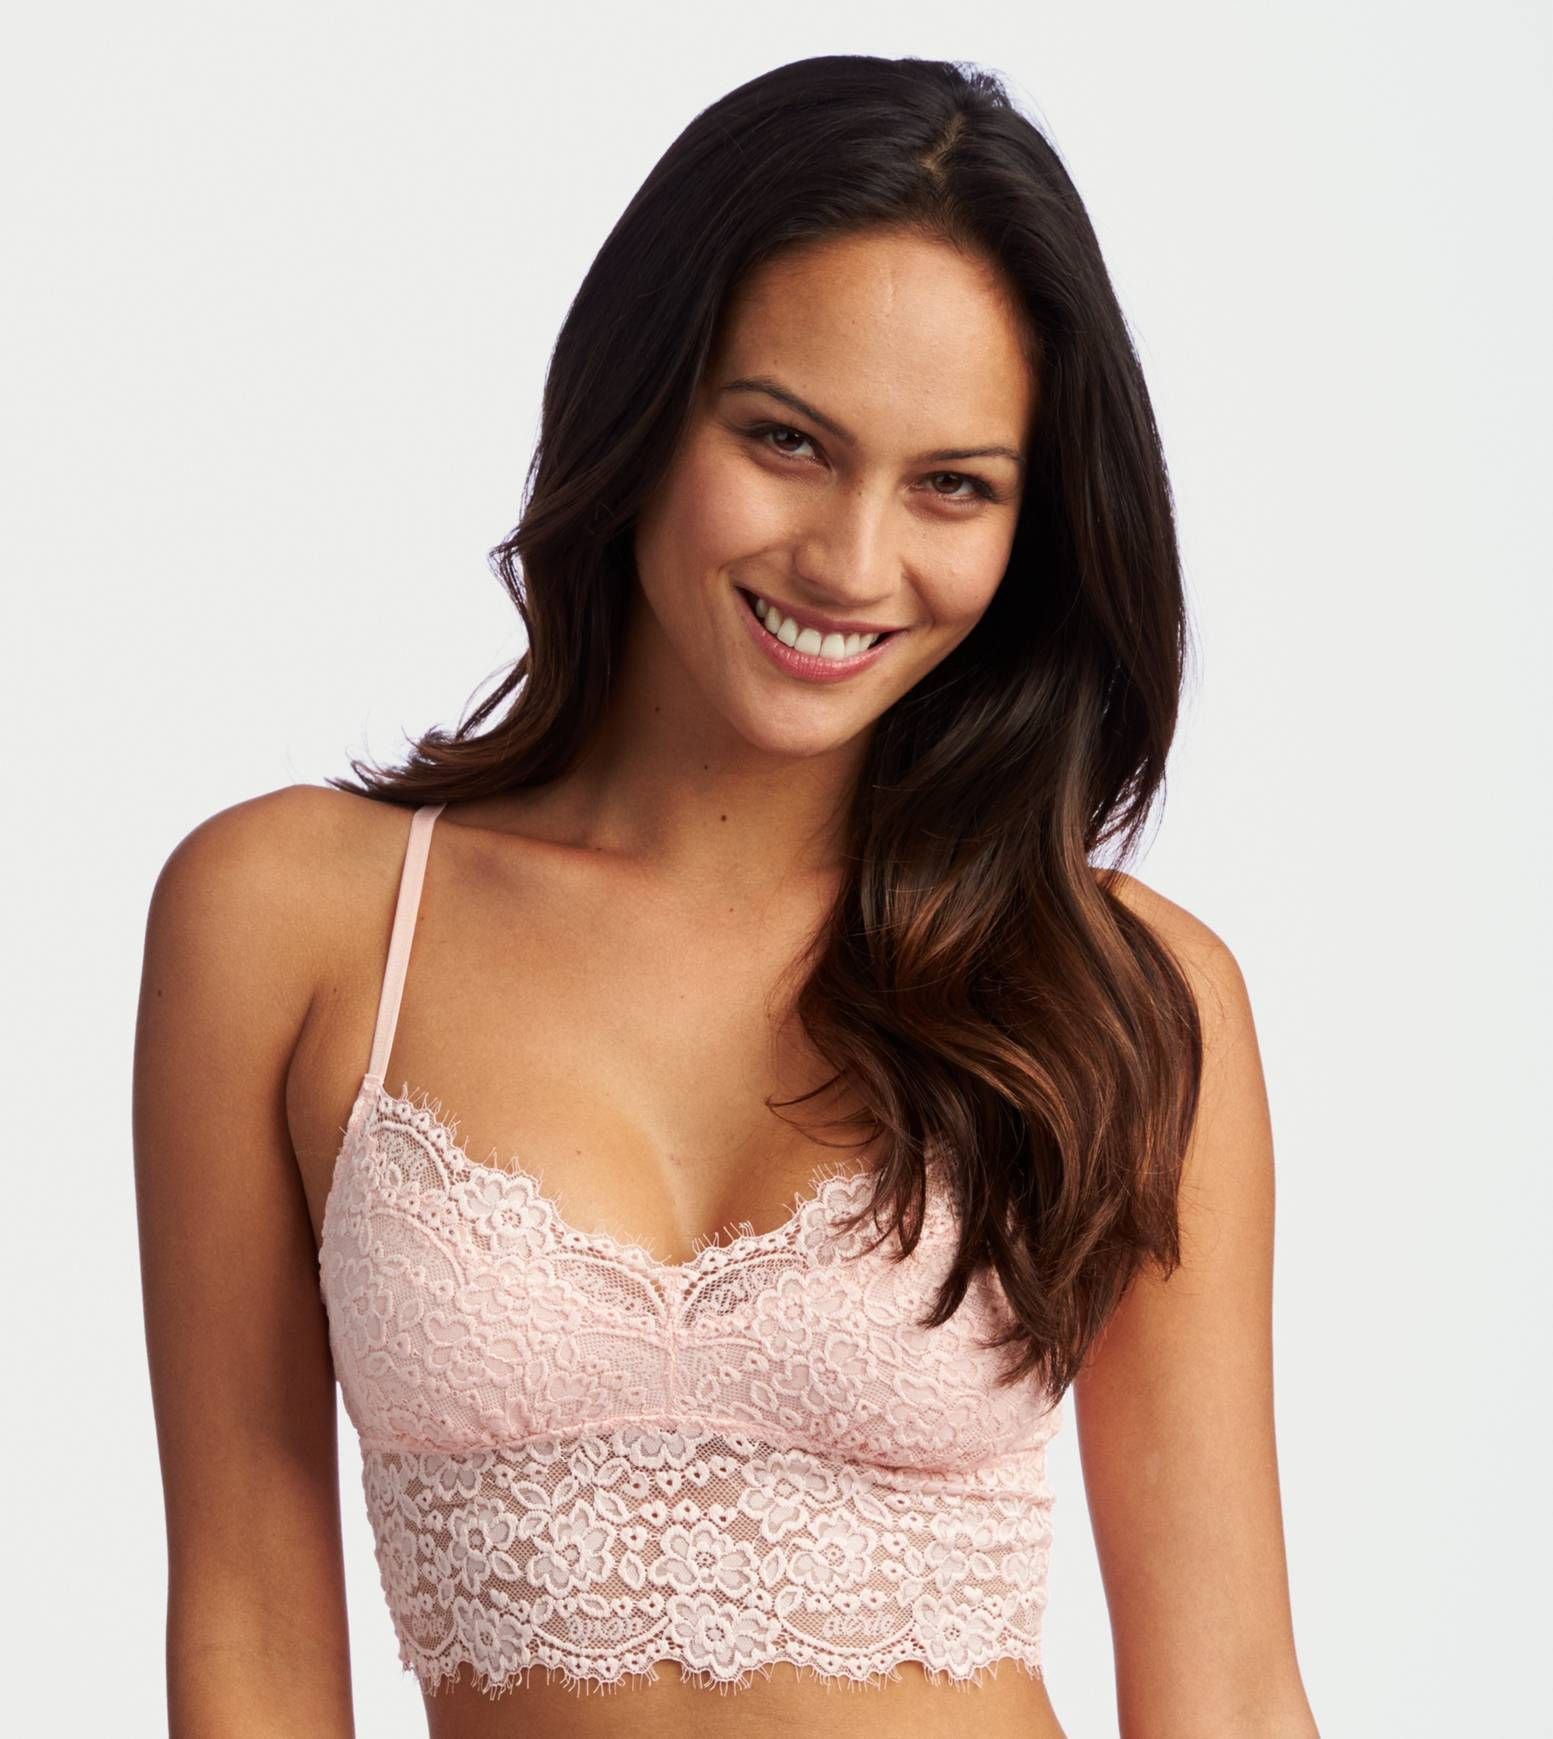 e63193c57e Peach Wash Aerie Romantic Lace Bralette - Softest lace in a pretty shape!   Aerie